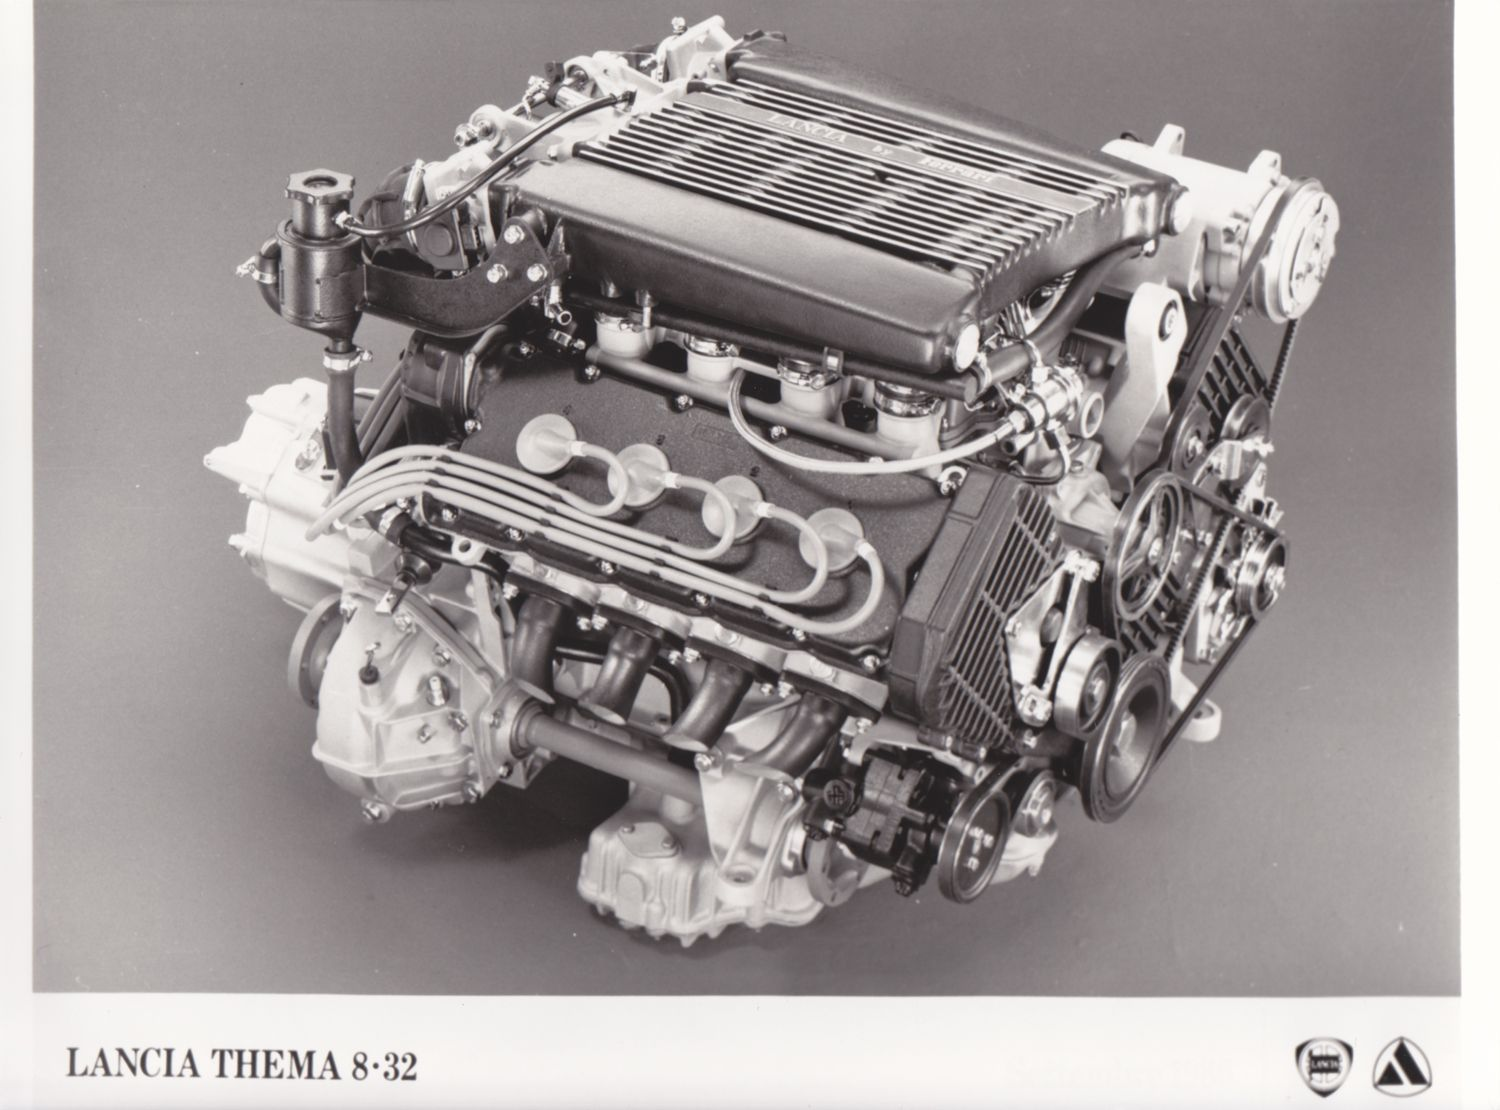 lancia thema 8.32 ferrari engine (1987) | ferrari | pinterest